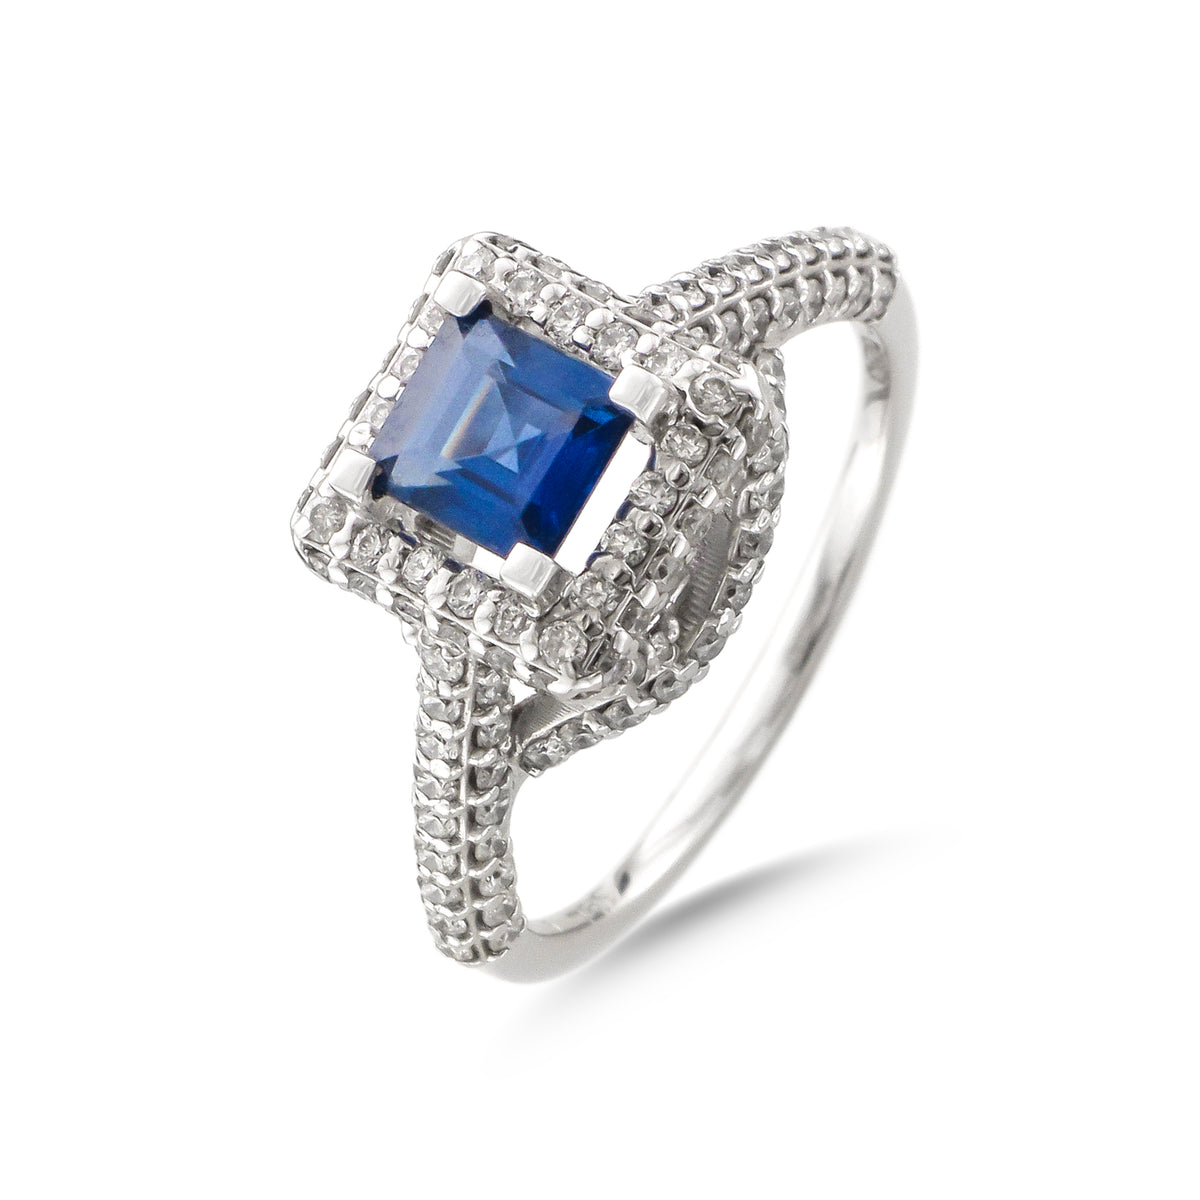 Vintage 18ct White Gold Halo Sapphire and Diamond Ring